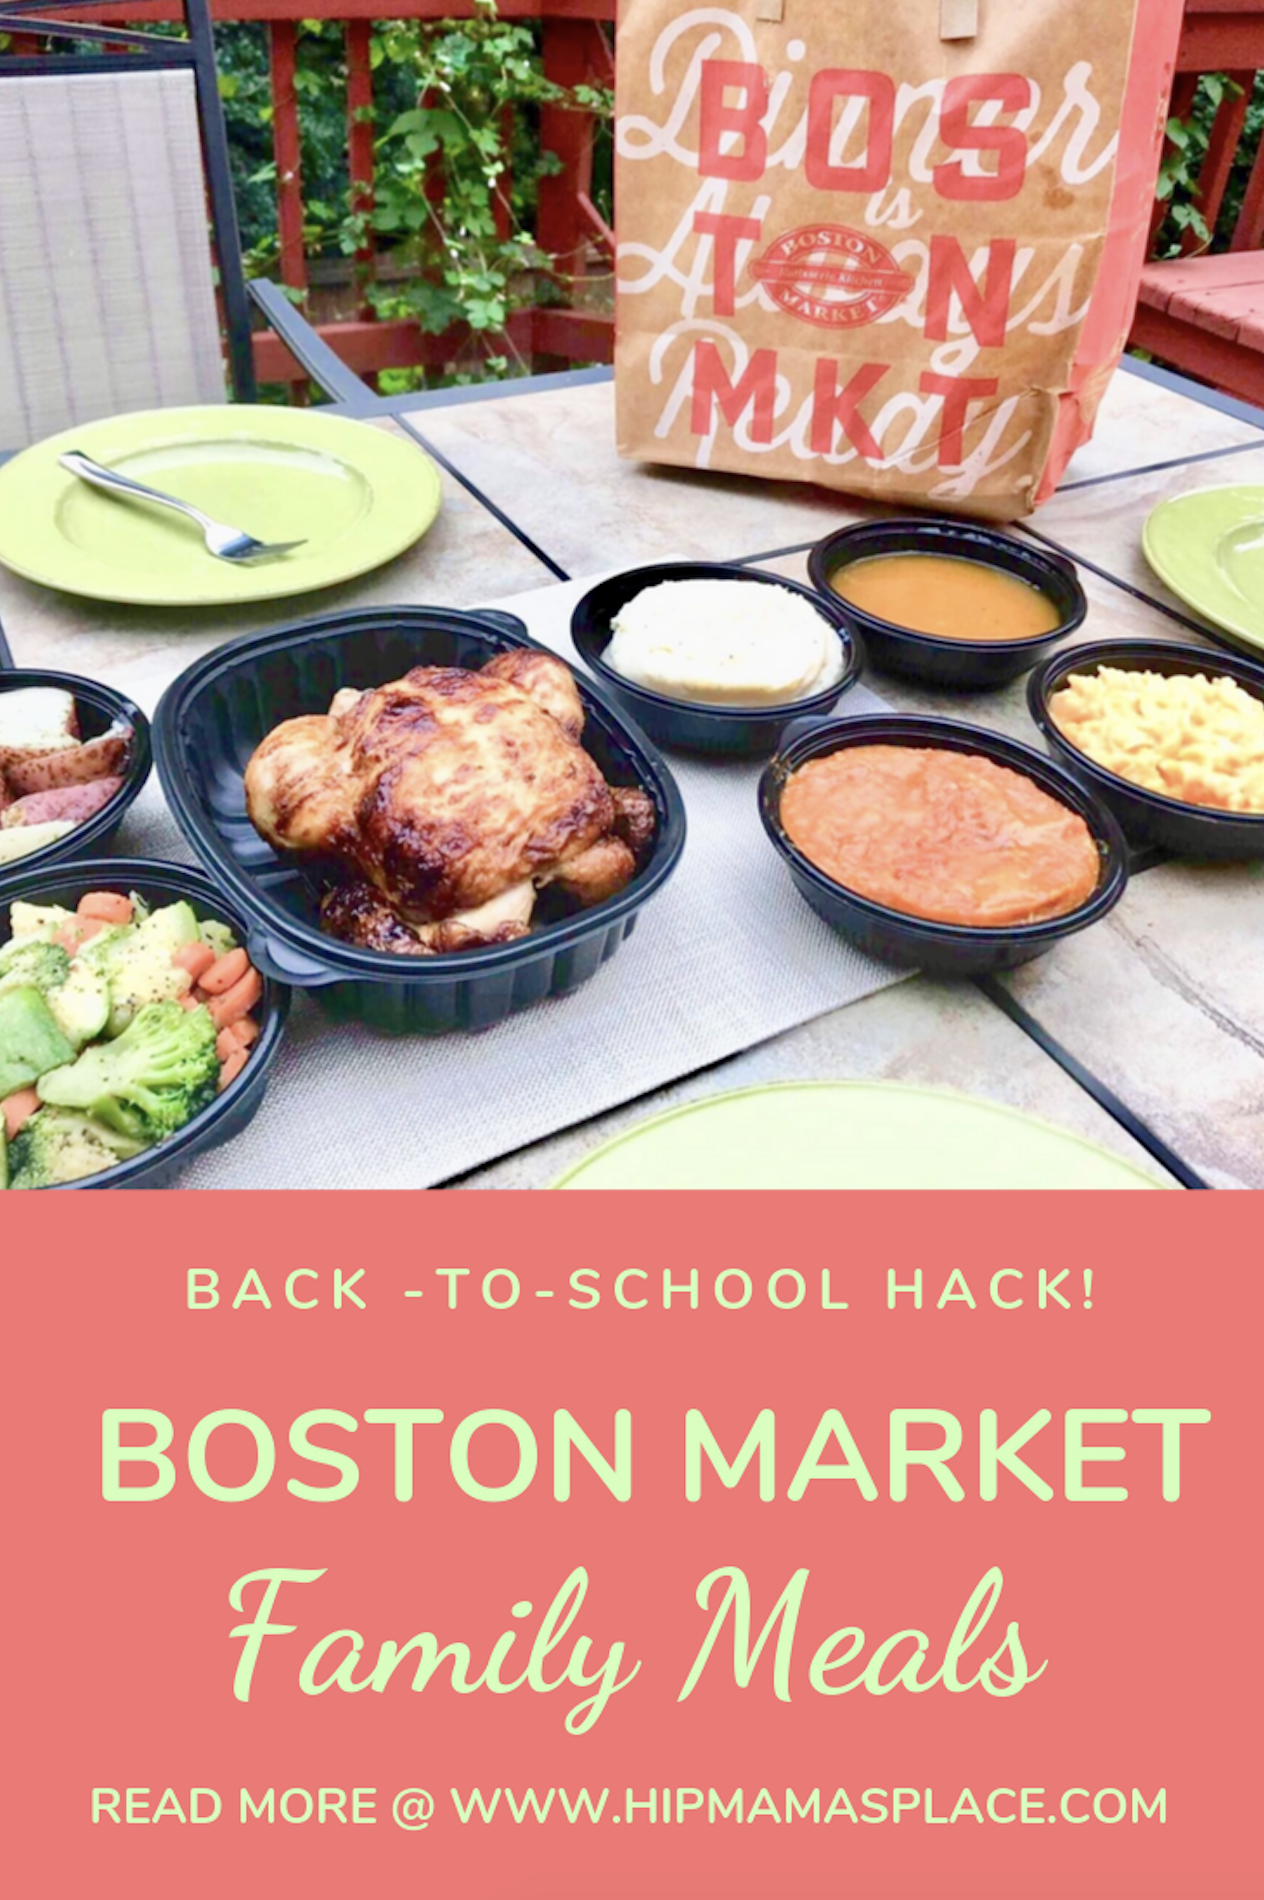 Back-to-school transition is easier with Boston Market Family Meals! Read our full review of Boston Market family Meals! #ad #BTSBostonMarket Full story @ https://bit.ly/2m00ECS #dinnerideas #familymeals #bostonmarket